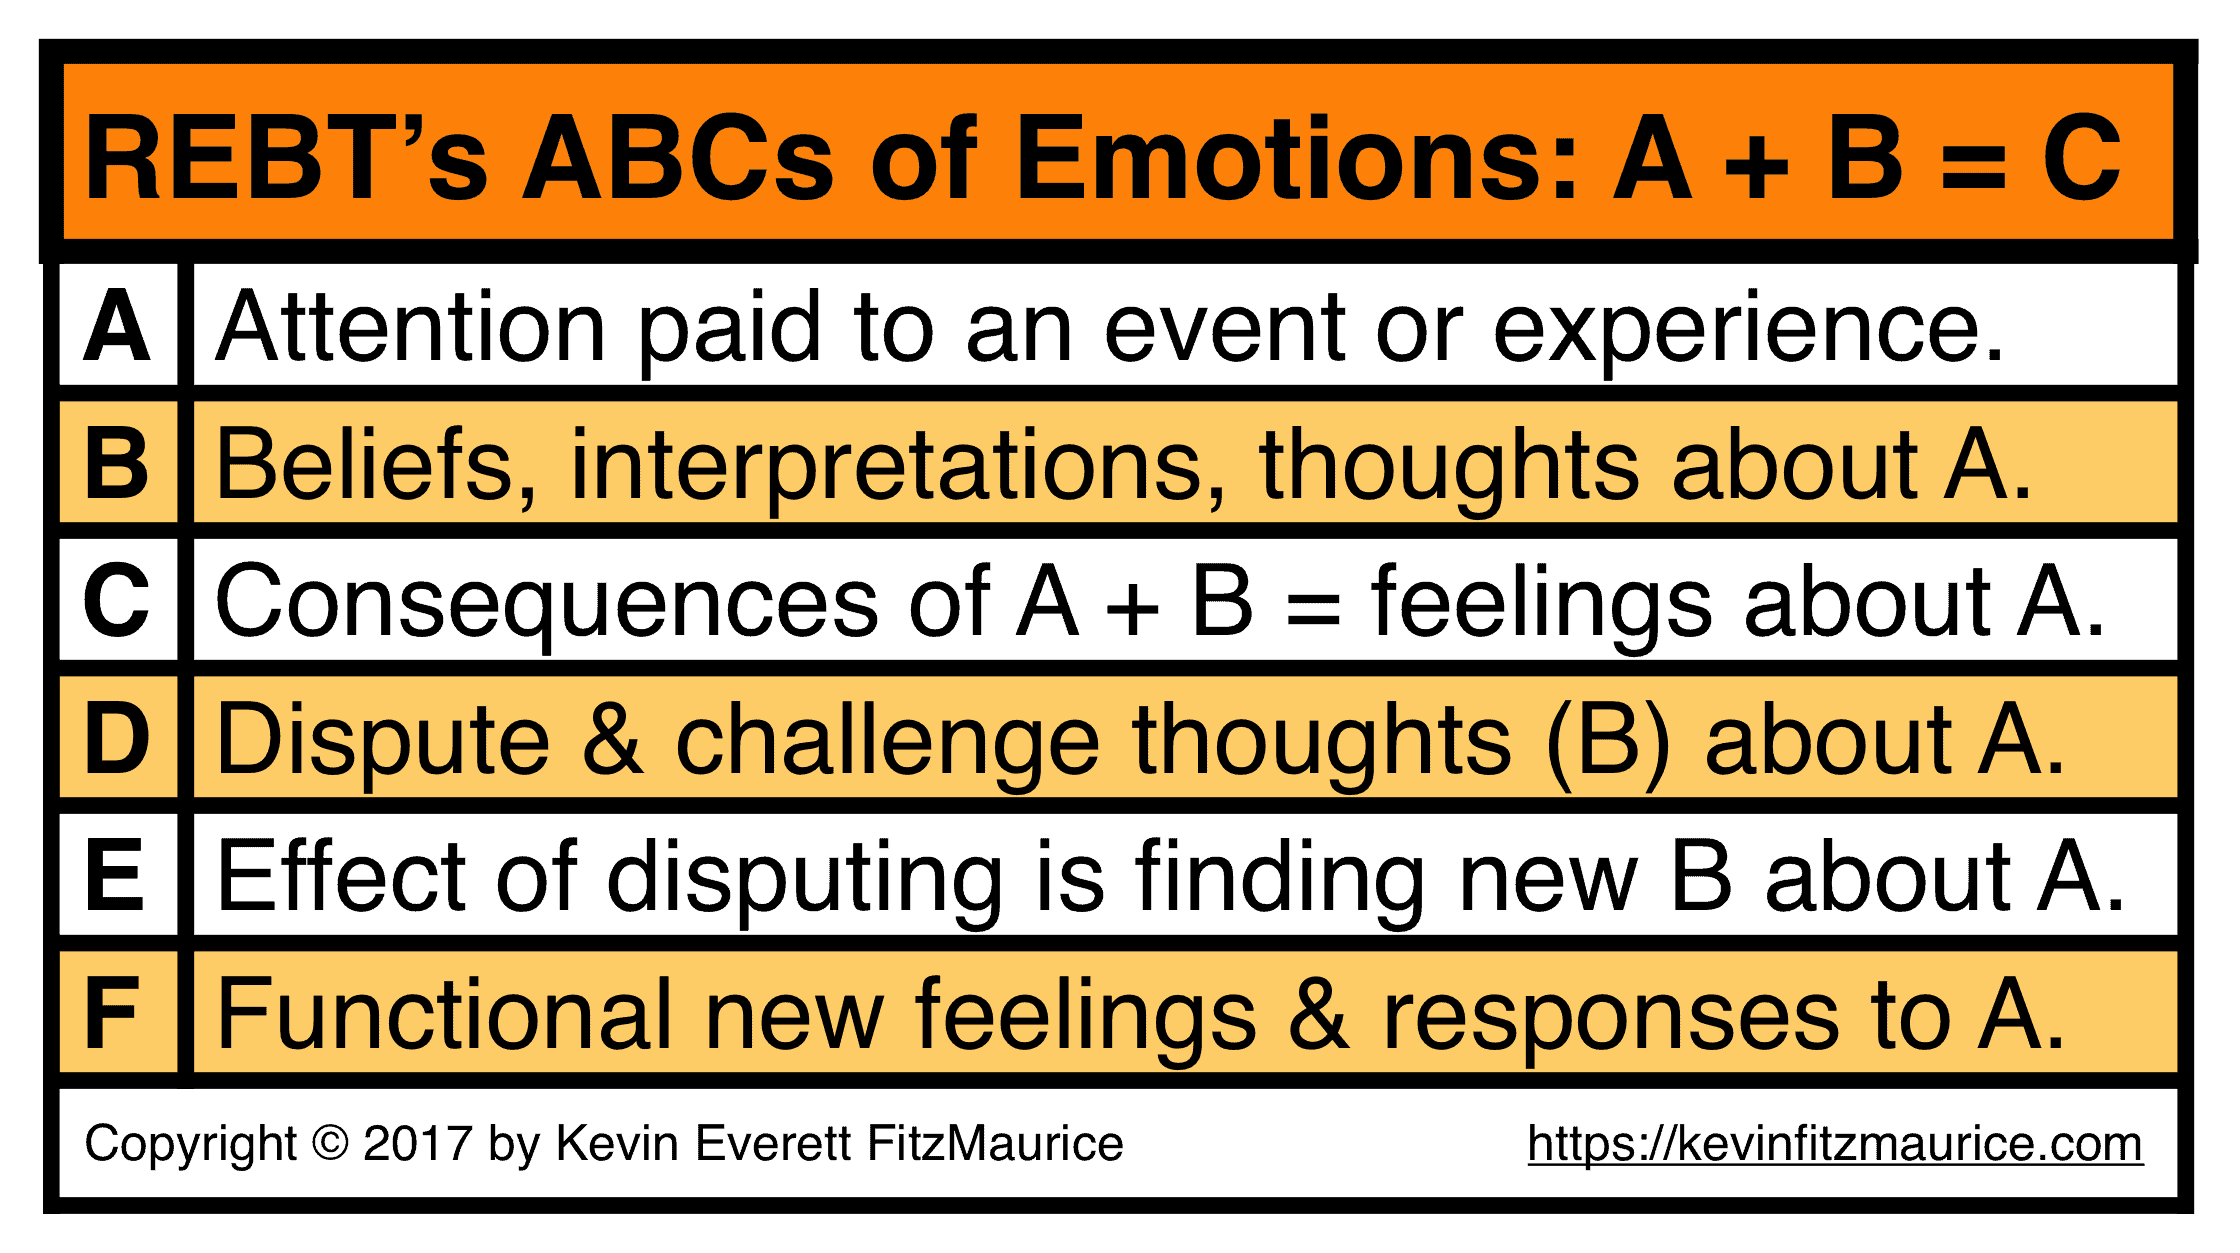 REBT's ABCs of Emotions